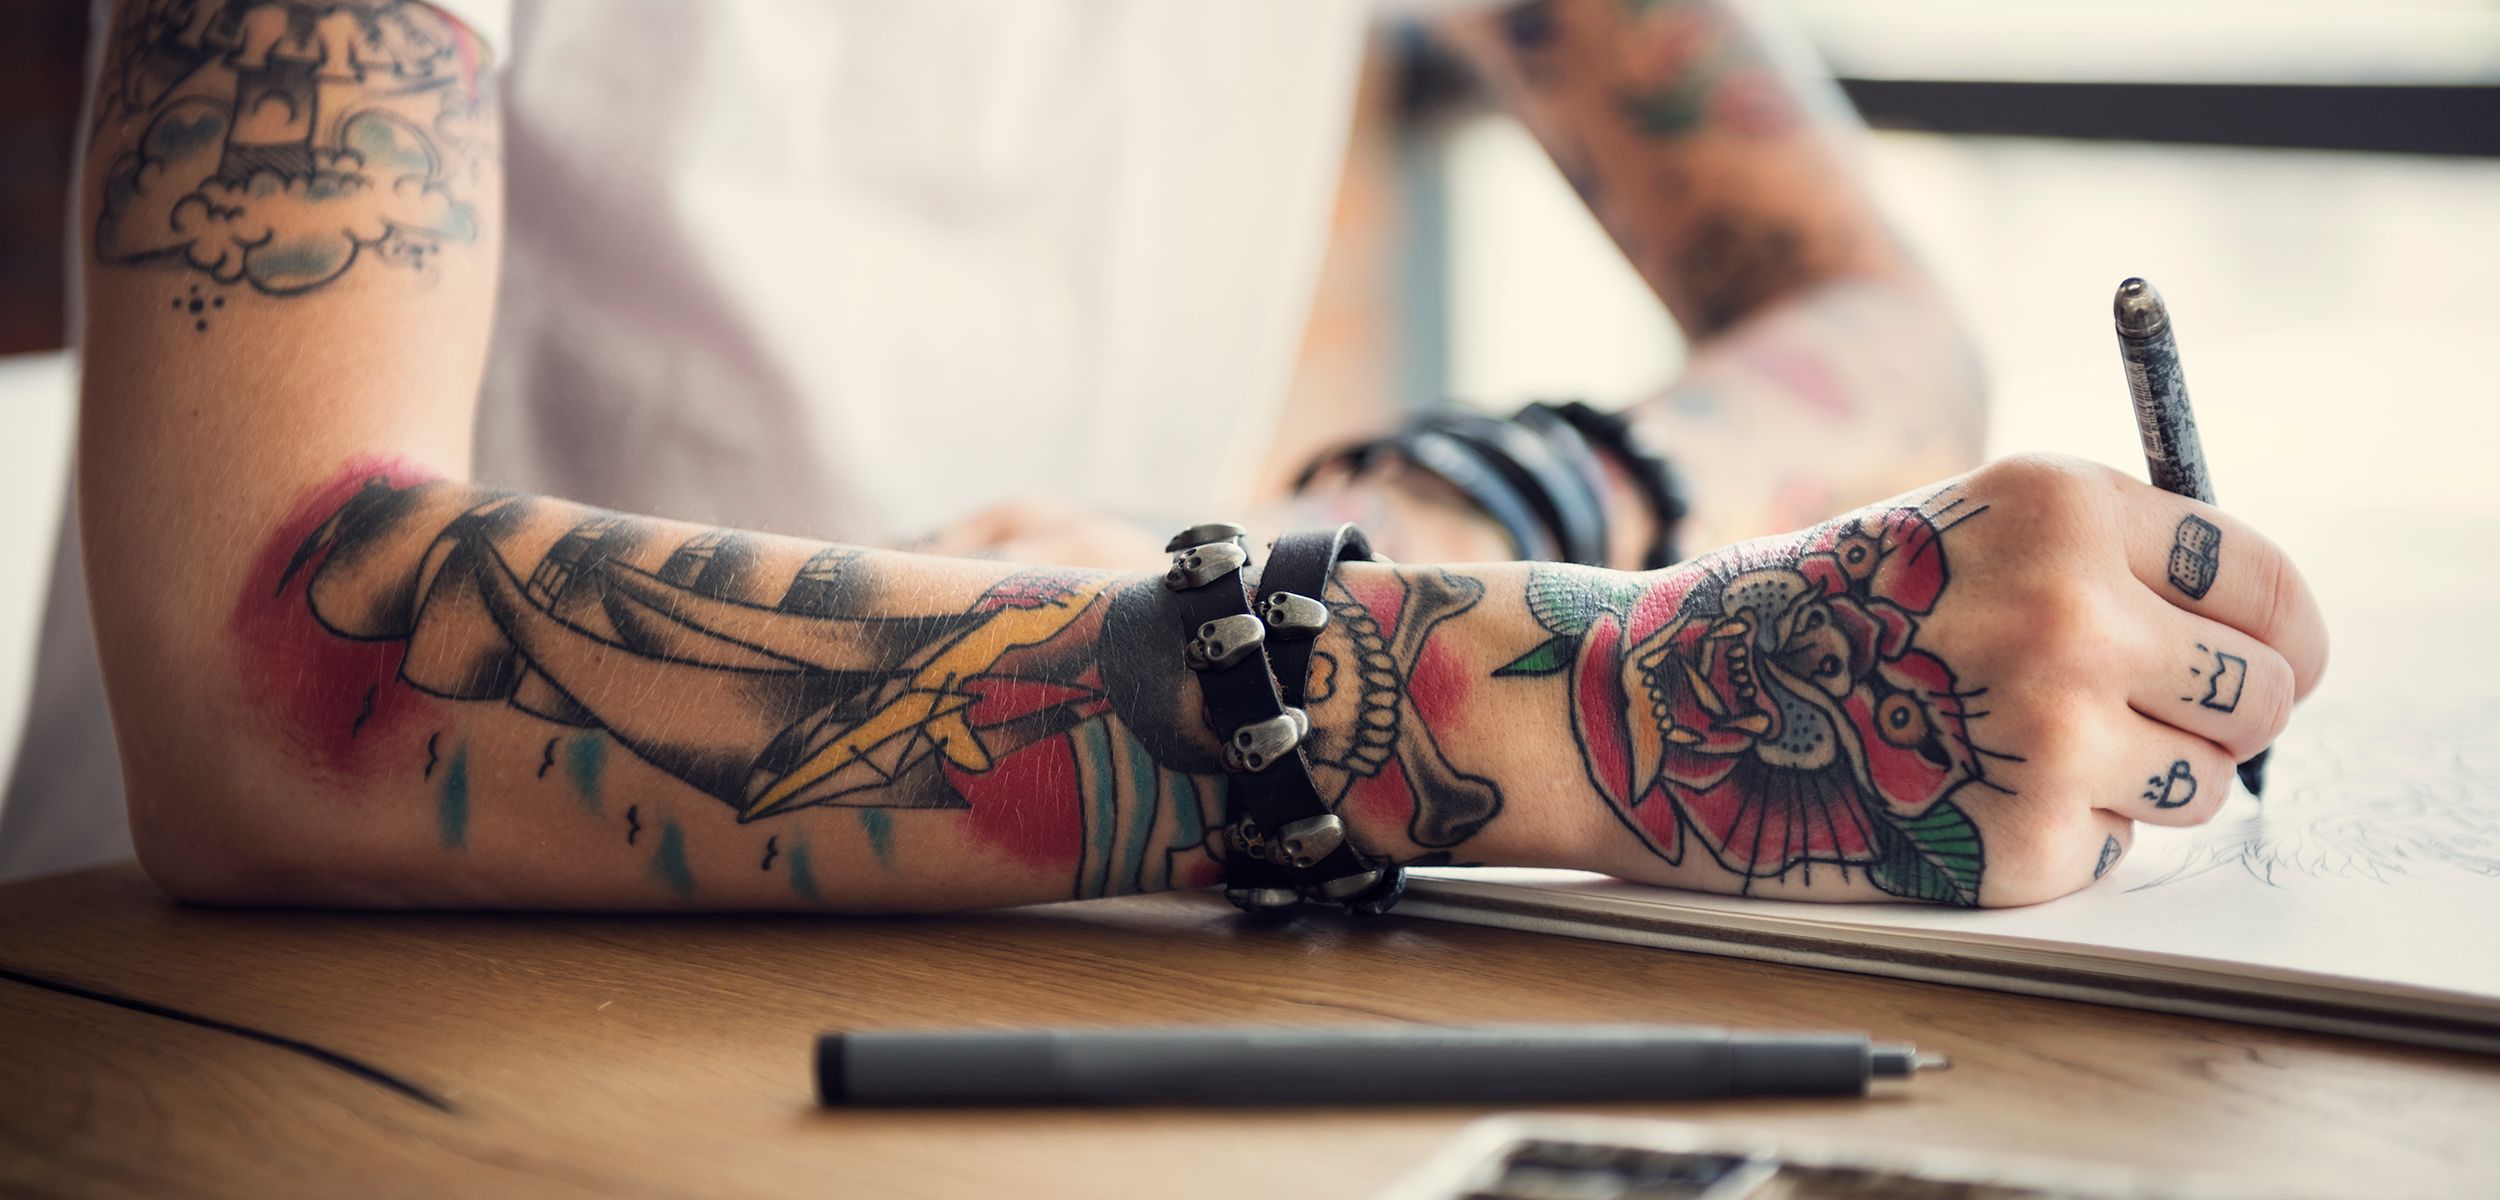 690517b02 Tattoodo is a platform for the cultivation and appreciation of tattoo art.  Currently, our community has almost 1 million users and among them 50k  tattoo ...